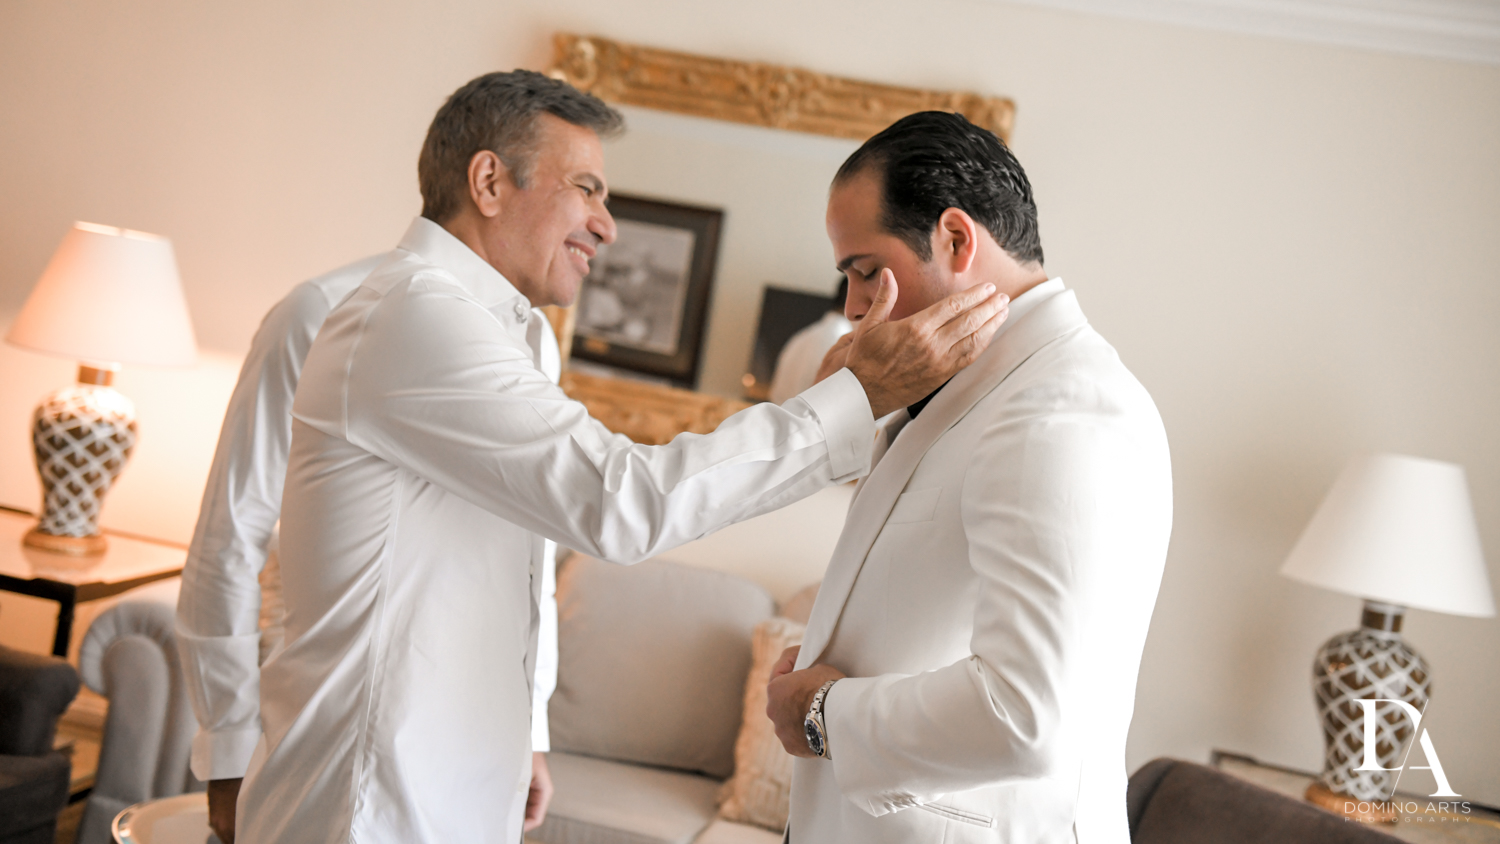 groom and father at Elegant Classy Wedding at Trump Doral by Domino Arts Photography